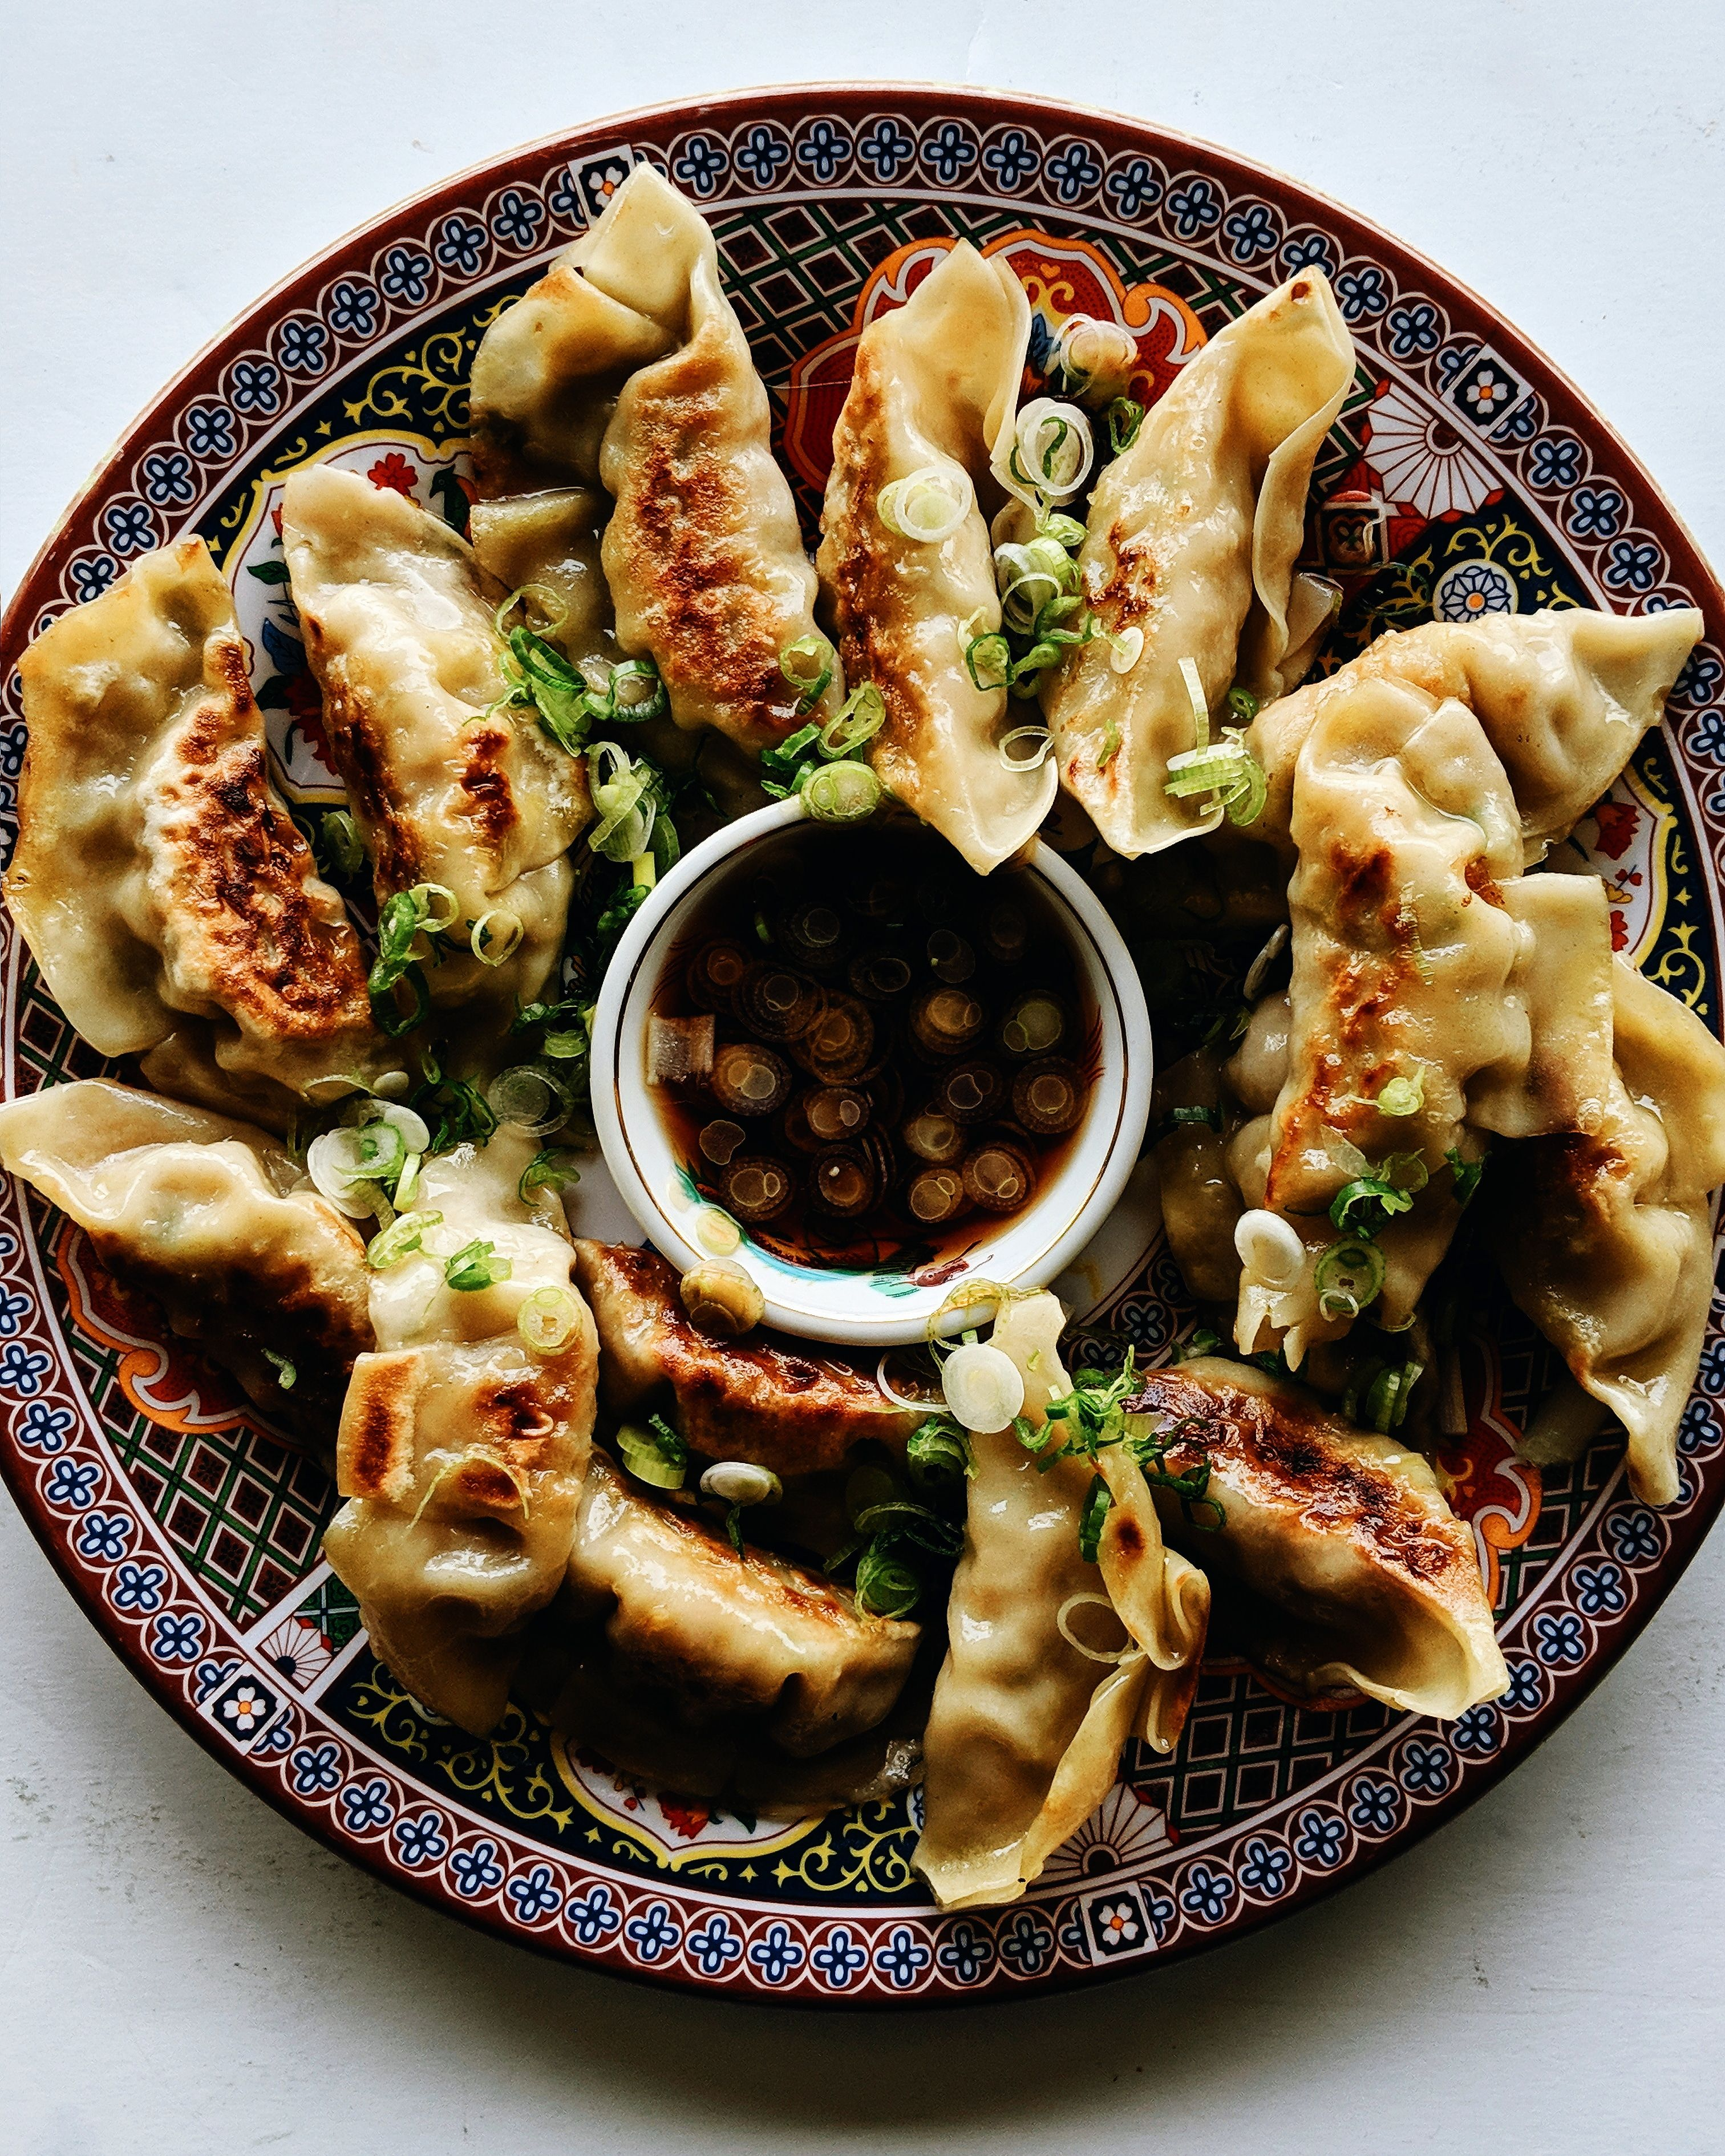 Vegetable Gyoza By Meatballssmama Quick Easy Recipe The Feedfeed